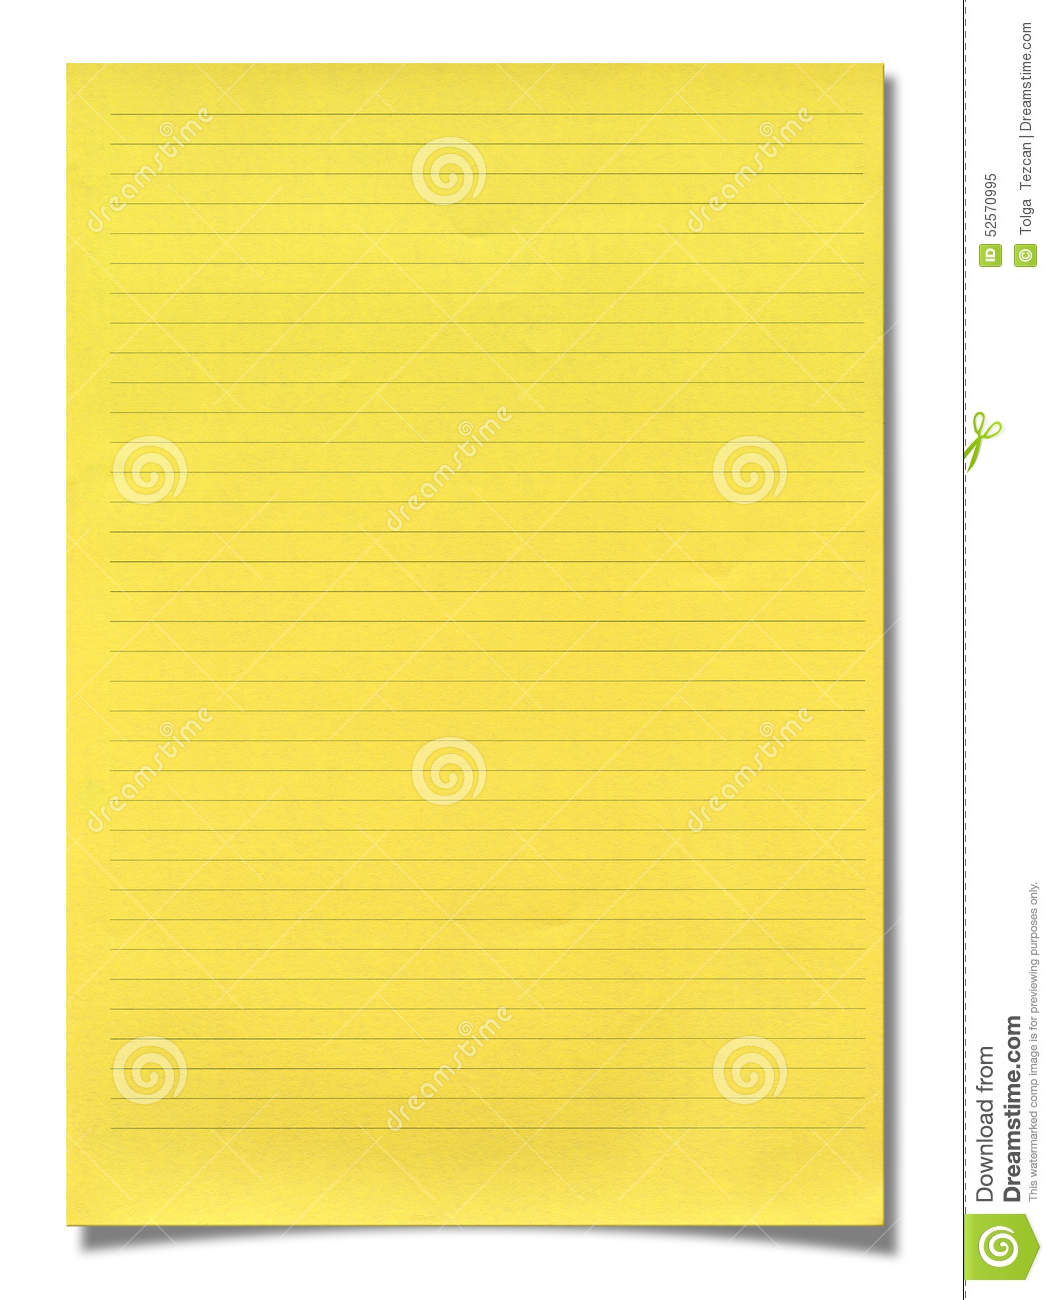 yellow lined paper I am using ms word 2013 and am trying to get a letter sent out using the yellow lined paper and can't get the words to line up within the spaces properly some of them line up but not all of them.